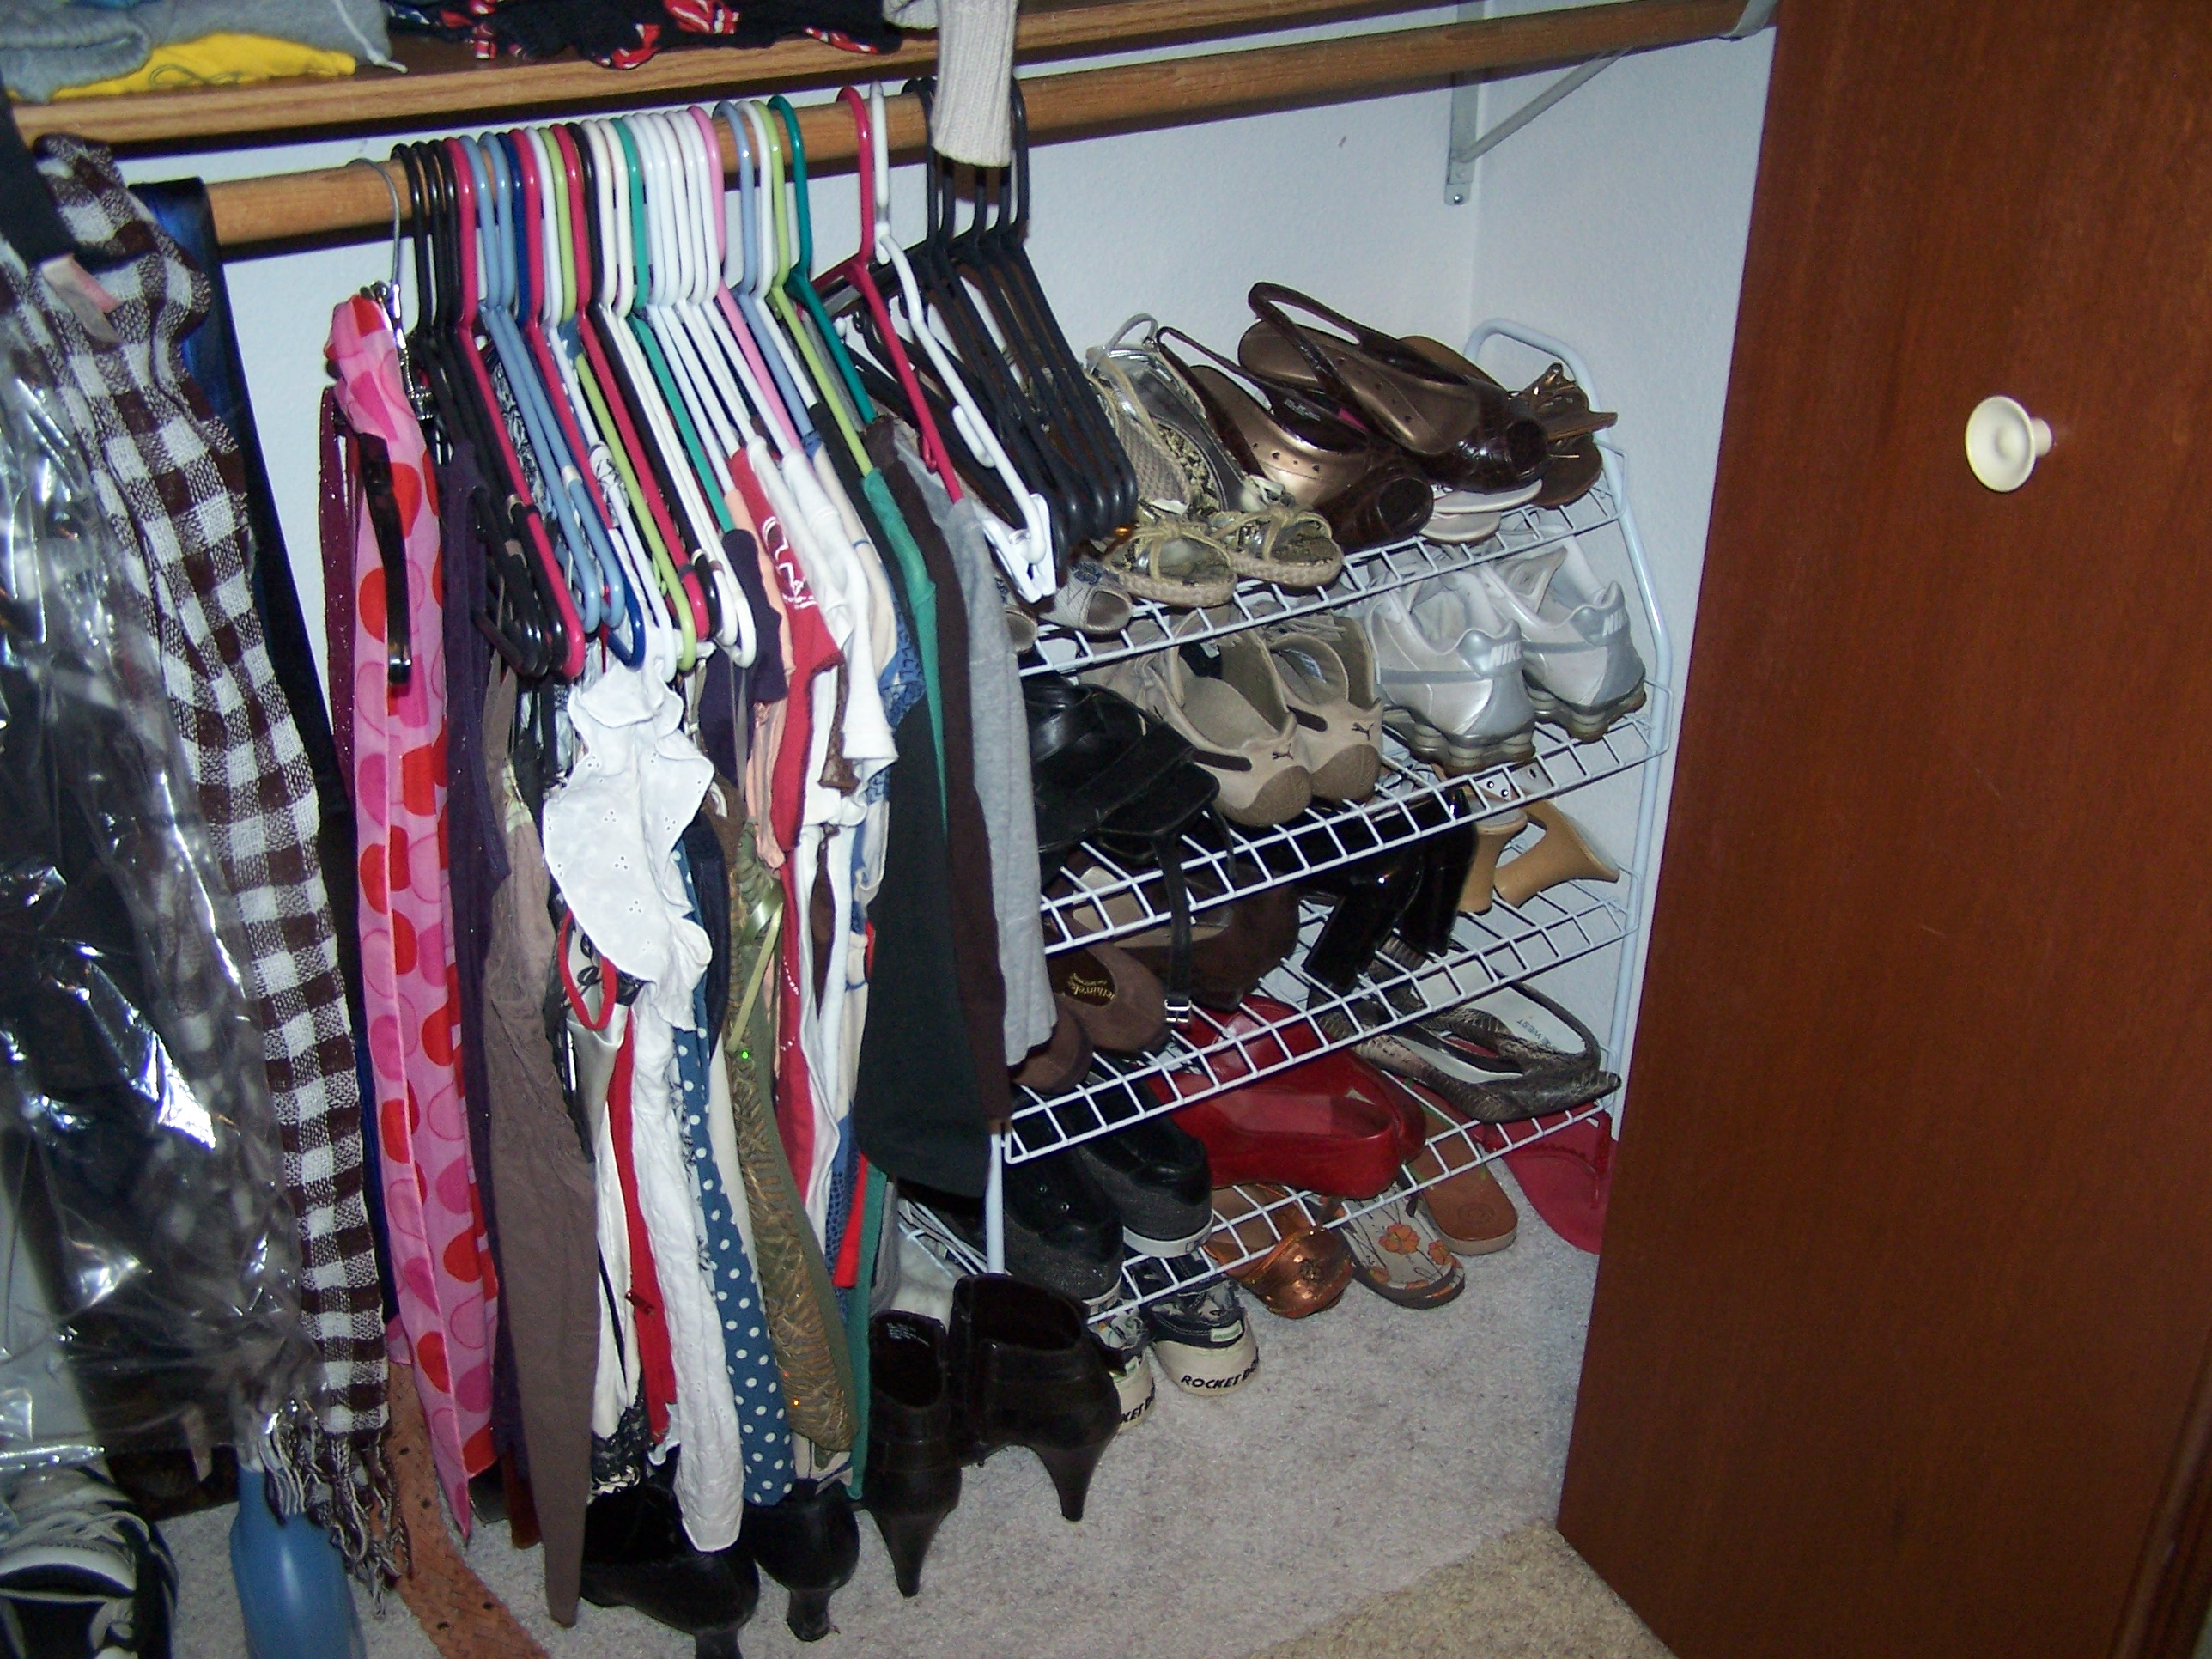 We hang belts, scarves, and ties on the low bar, along with a few of my shorter shirts.  My giant shoe rack fits in the corner.